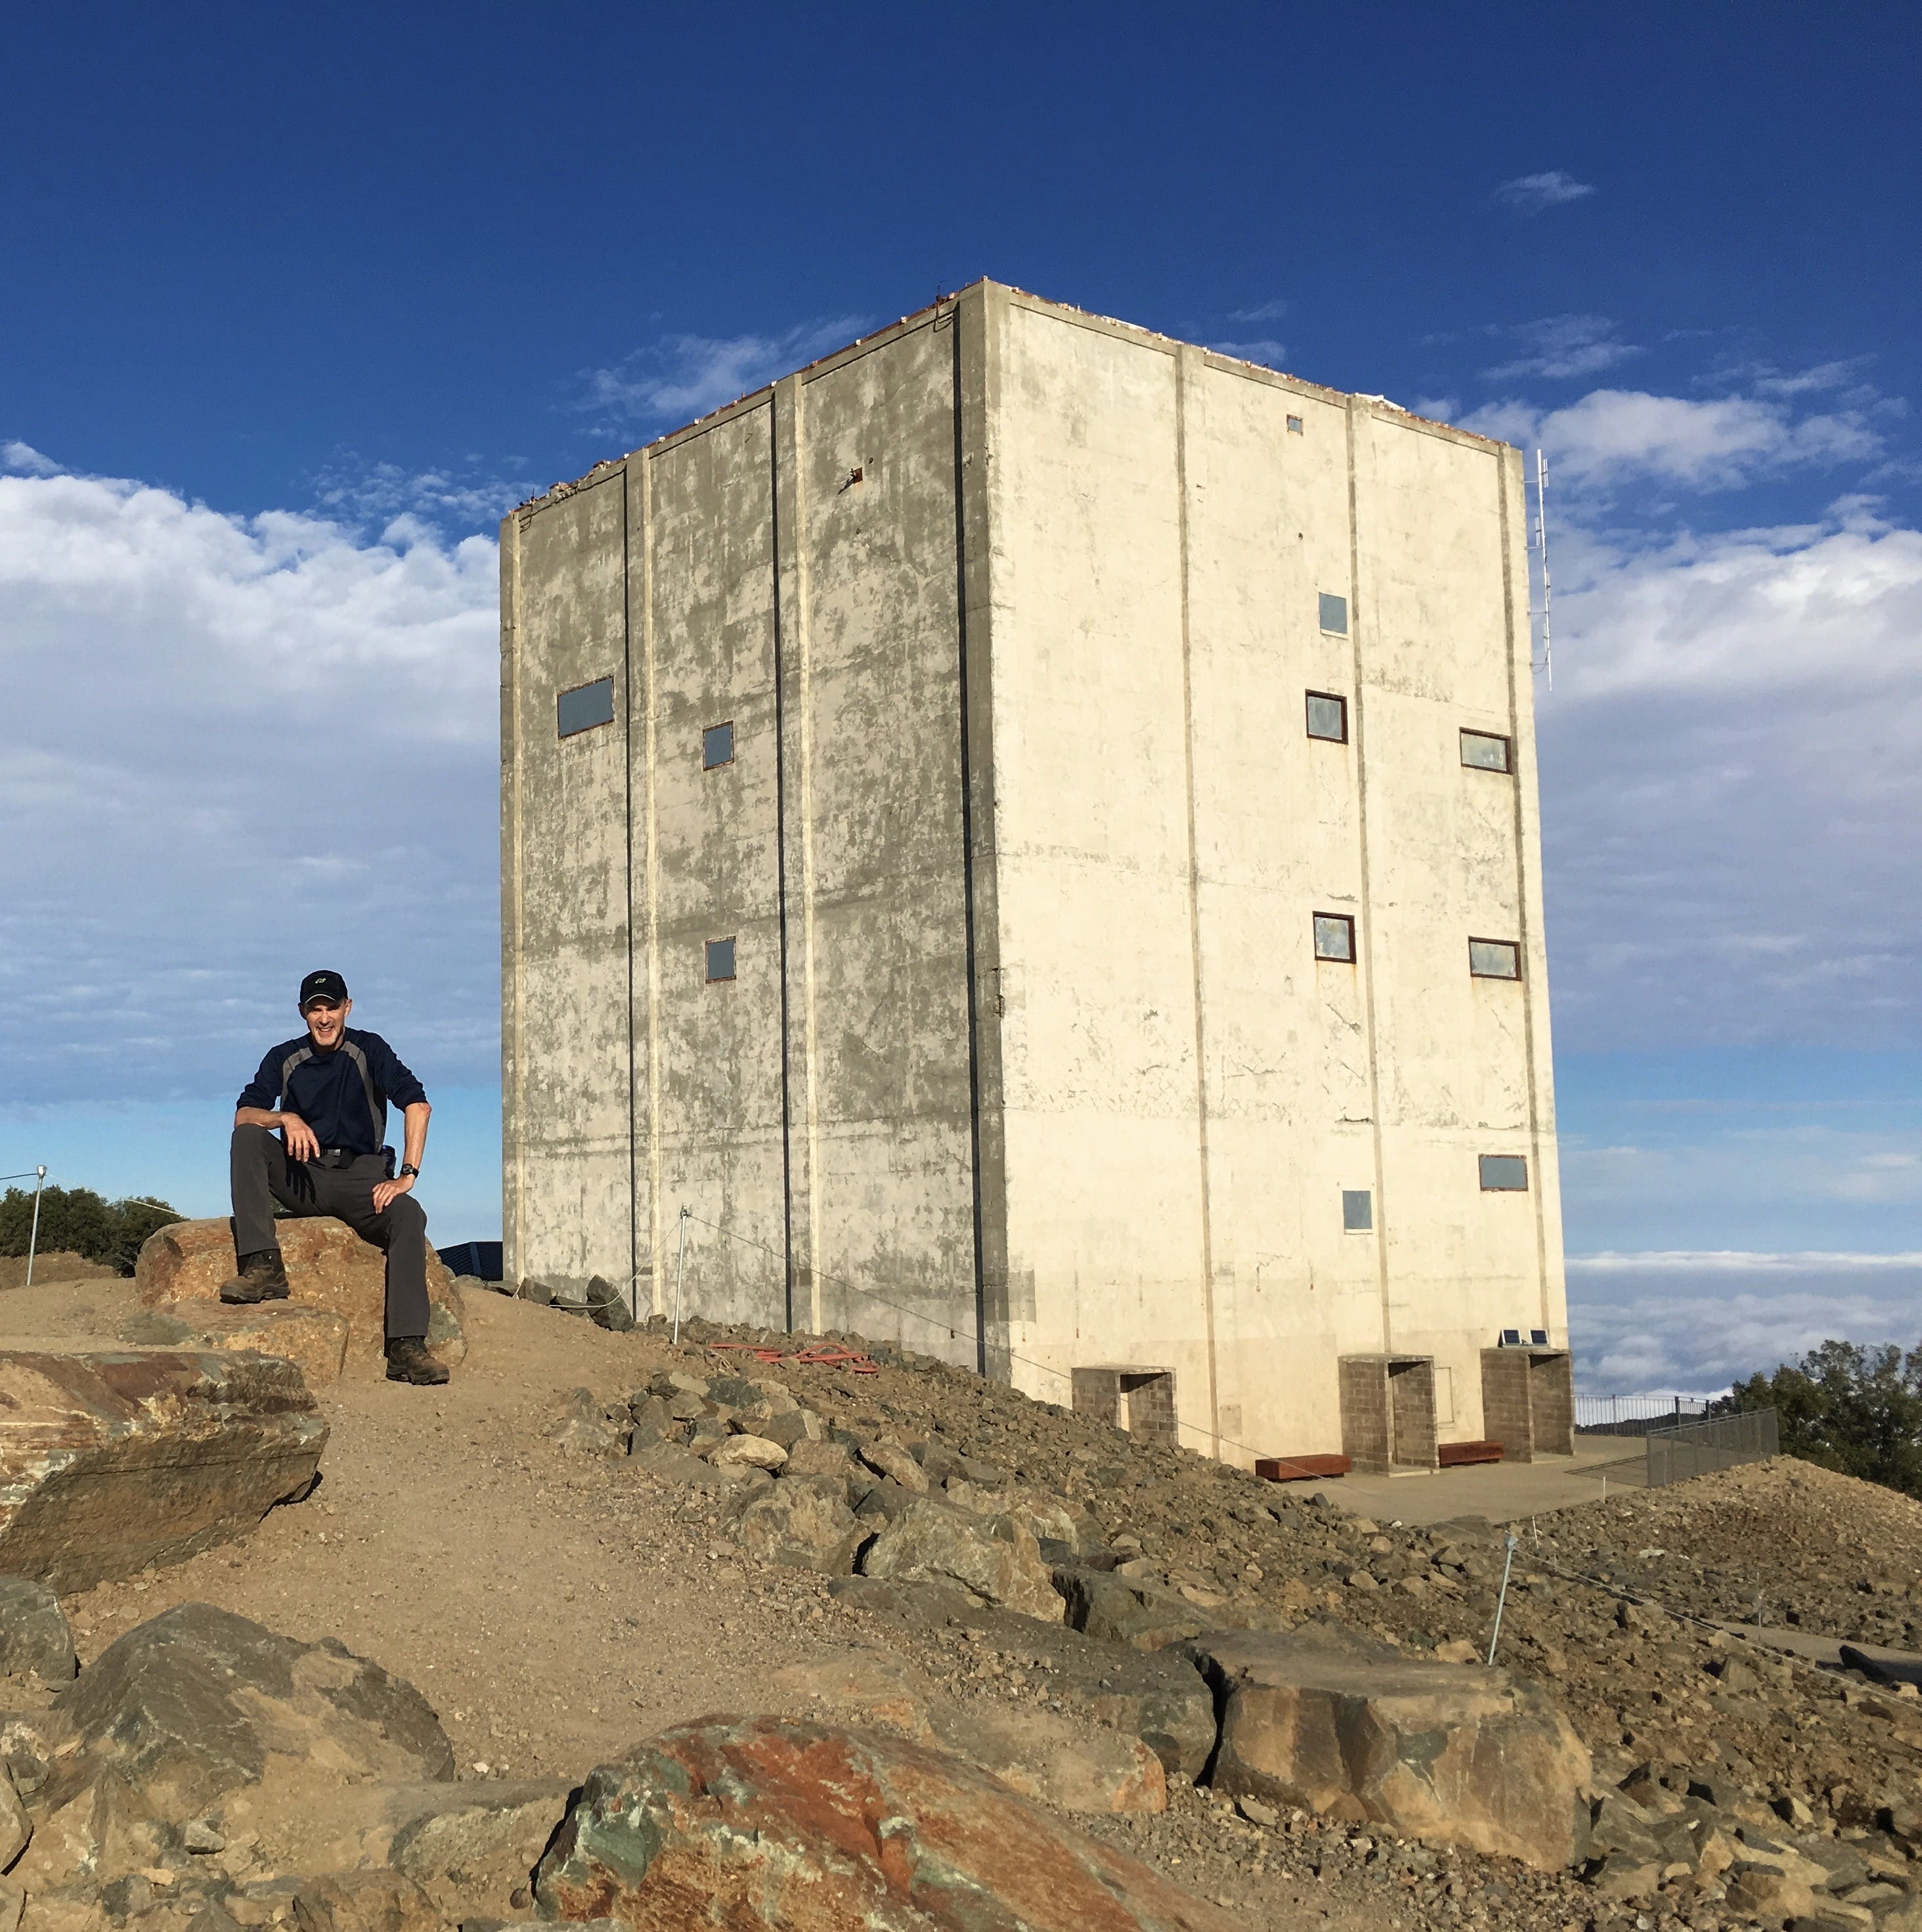 A person sitting in front of The Cube radar tower